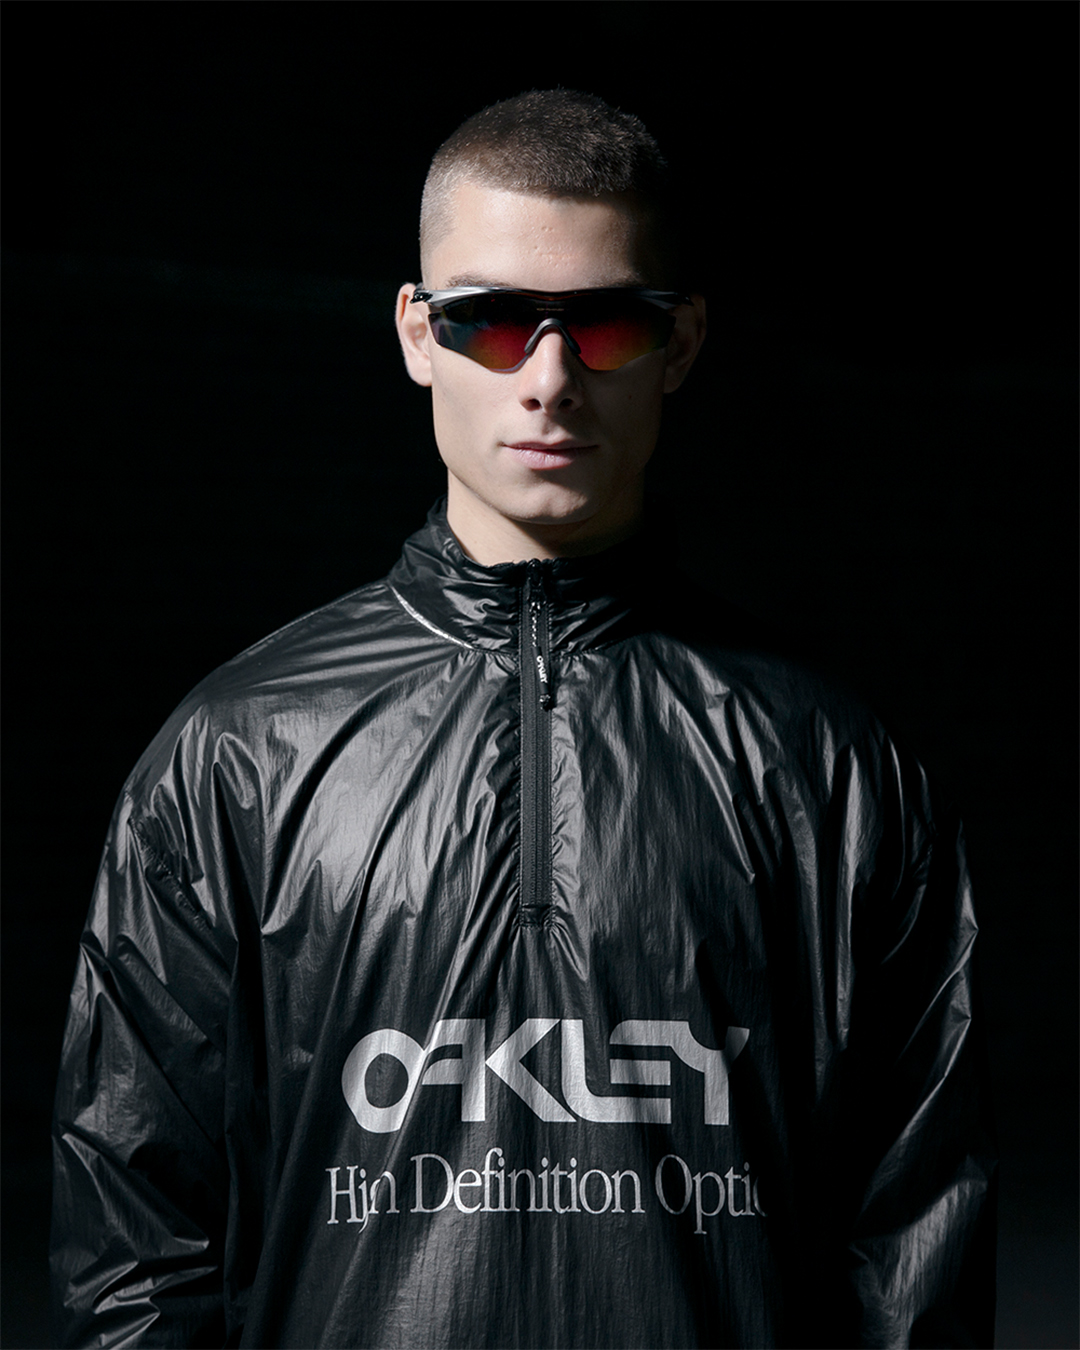 Oakley 'High Definition Optics' Collection